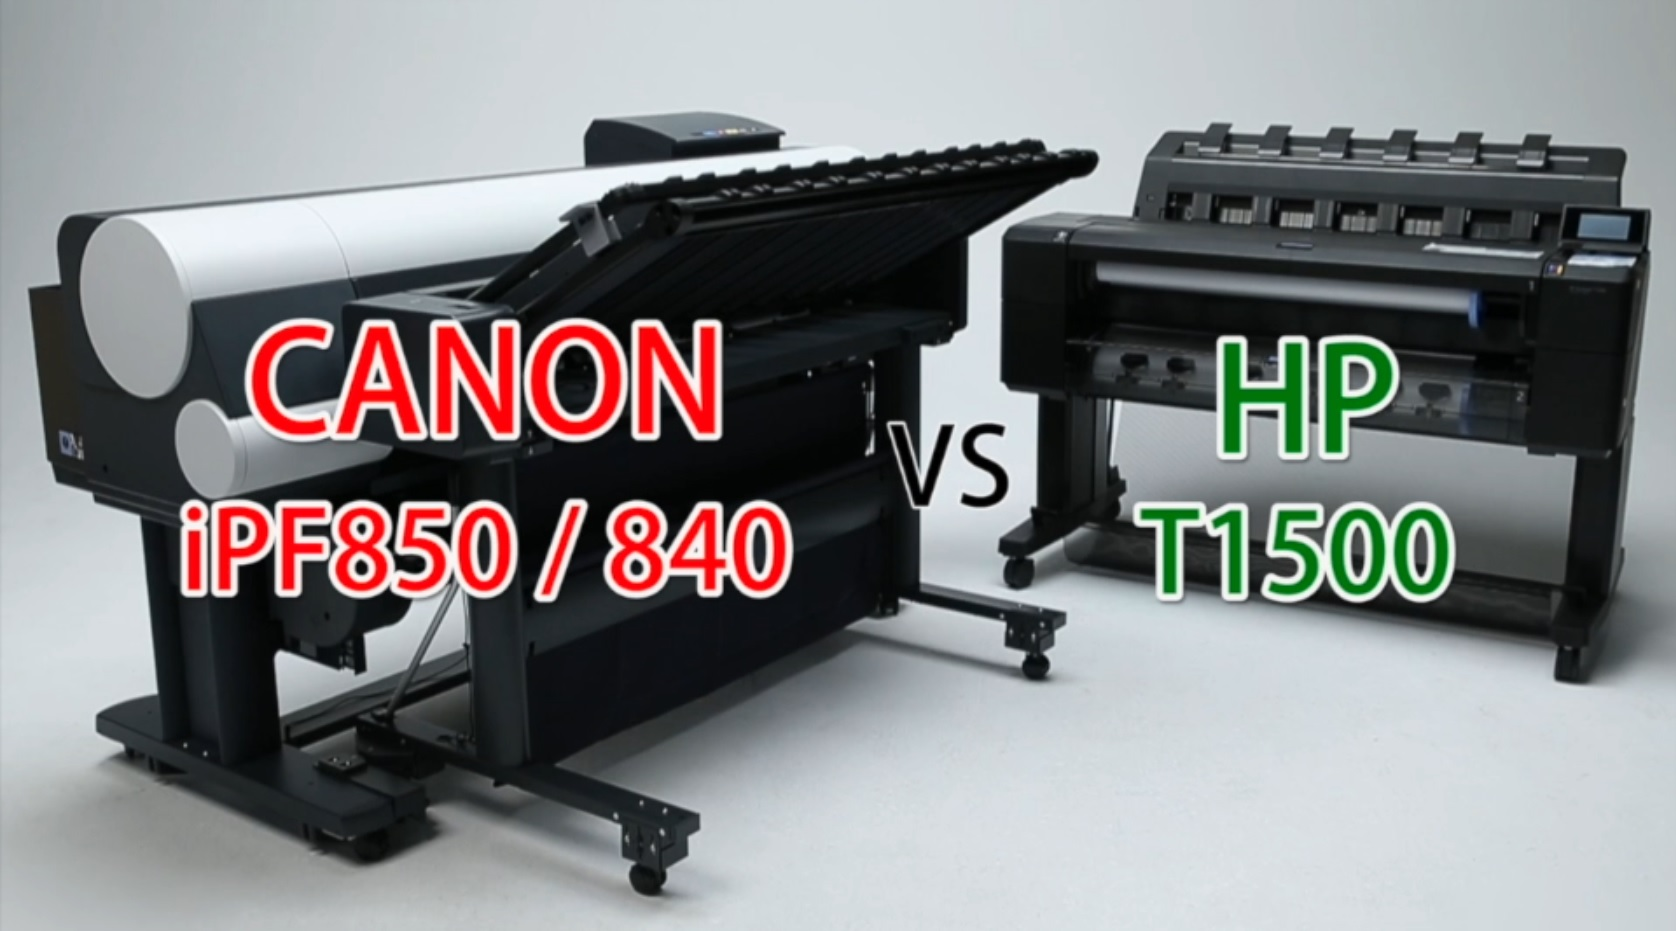 Canon iPF840/850 Vs HP T1500 graphic